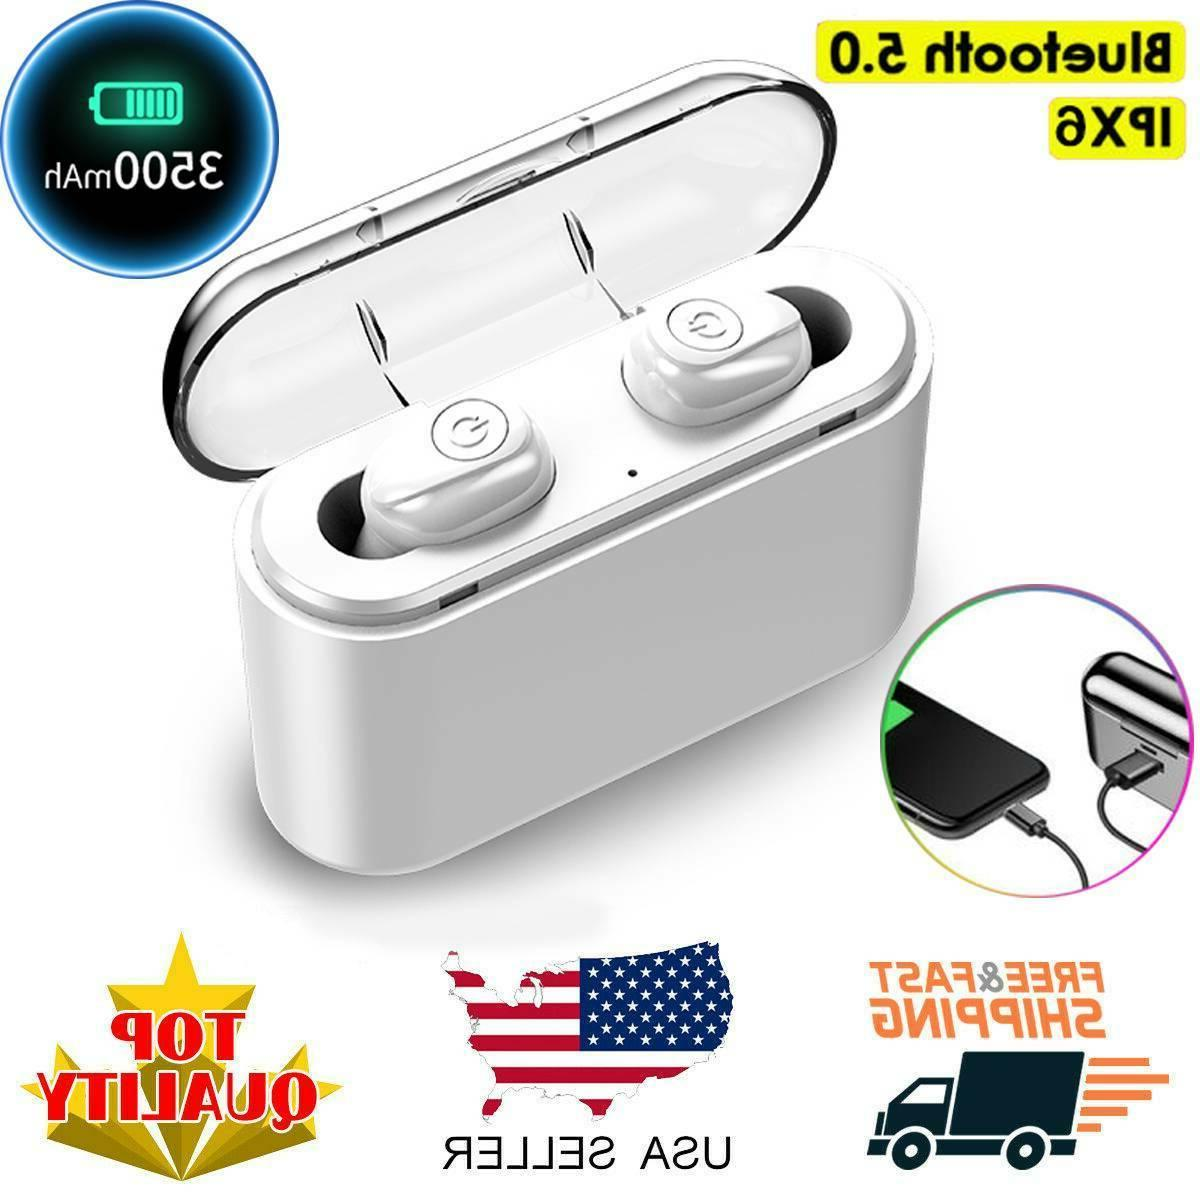 US Waterproof Bluetooth Earbuds Headset Noise Cancelling